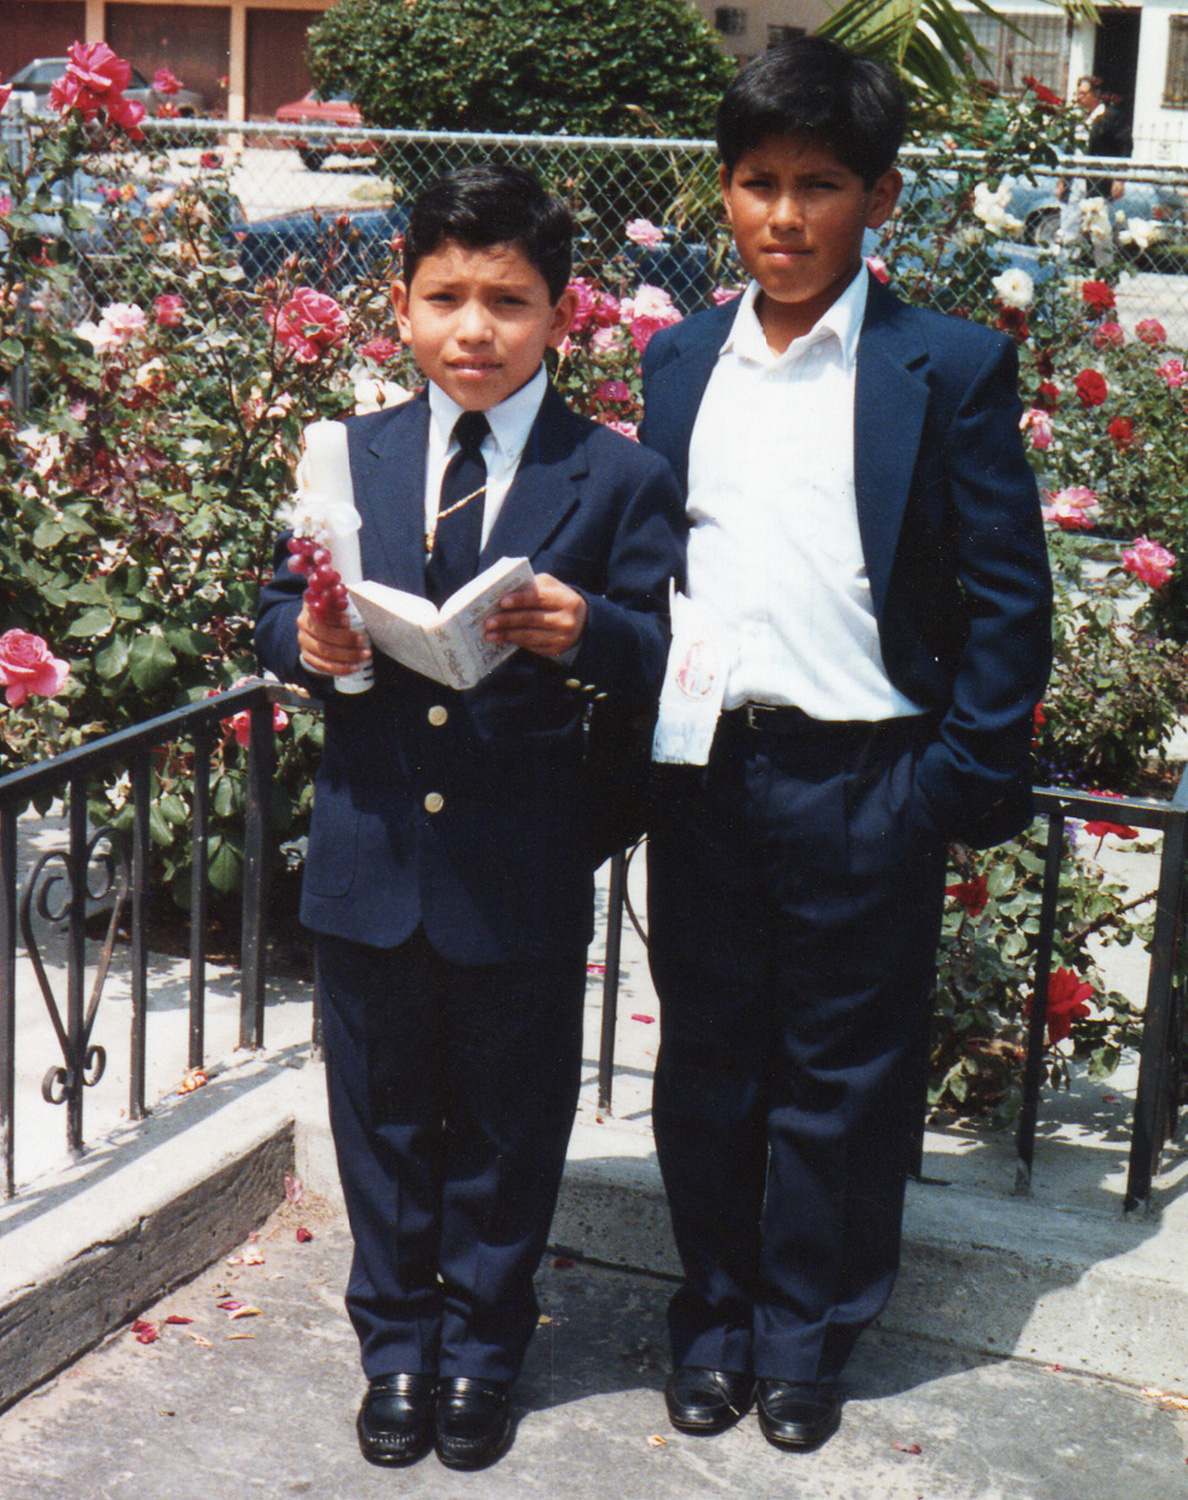 My bro and I at my First Communion. And yes, I was an altar boy.